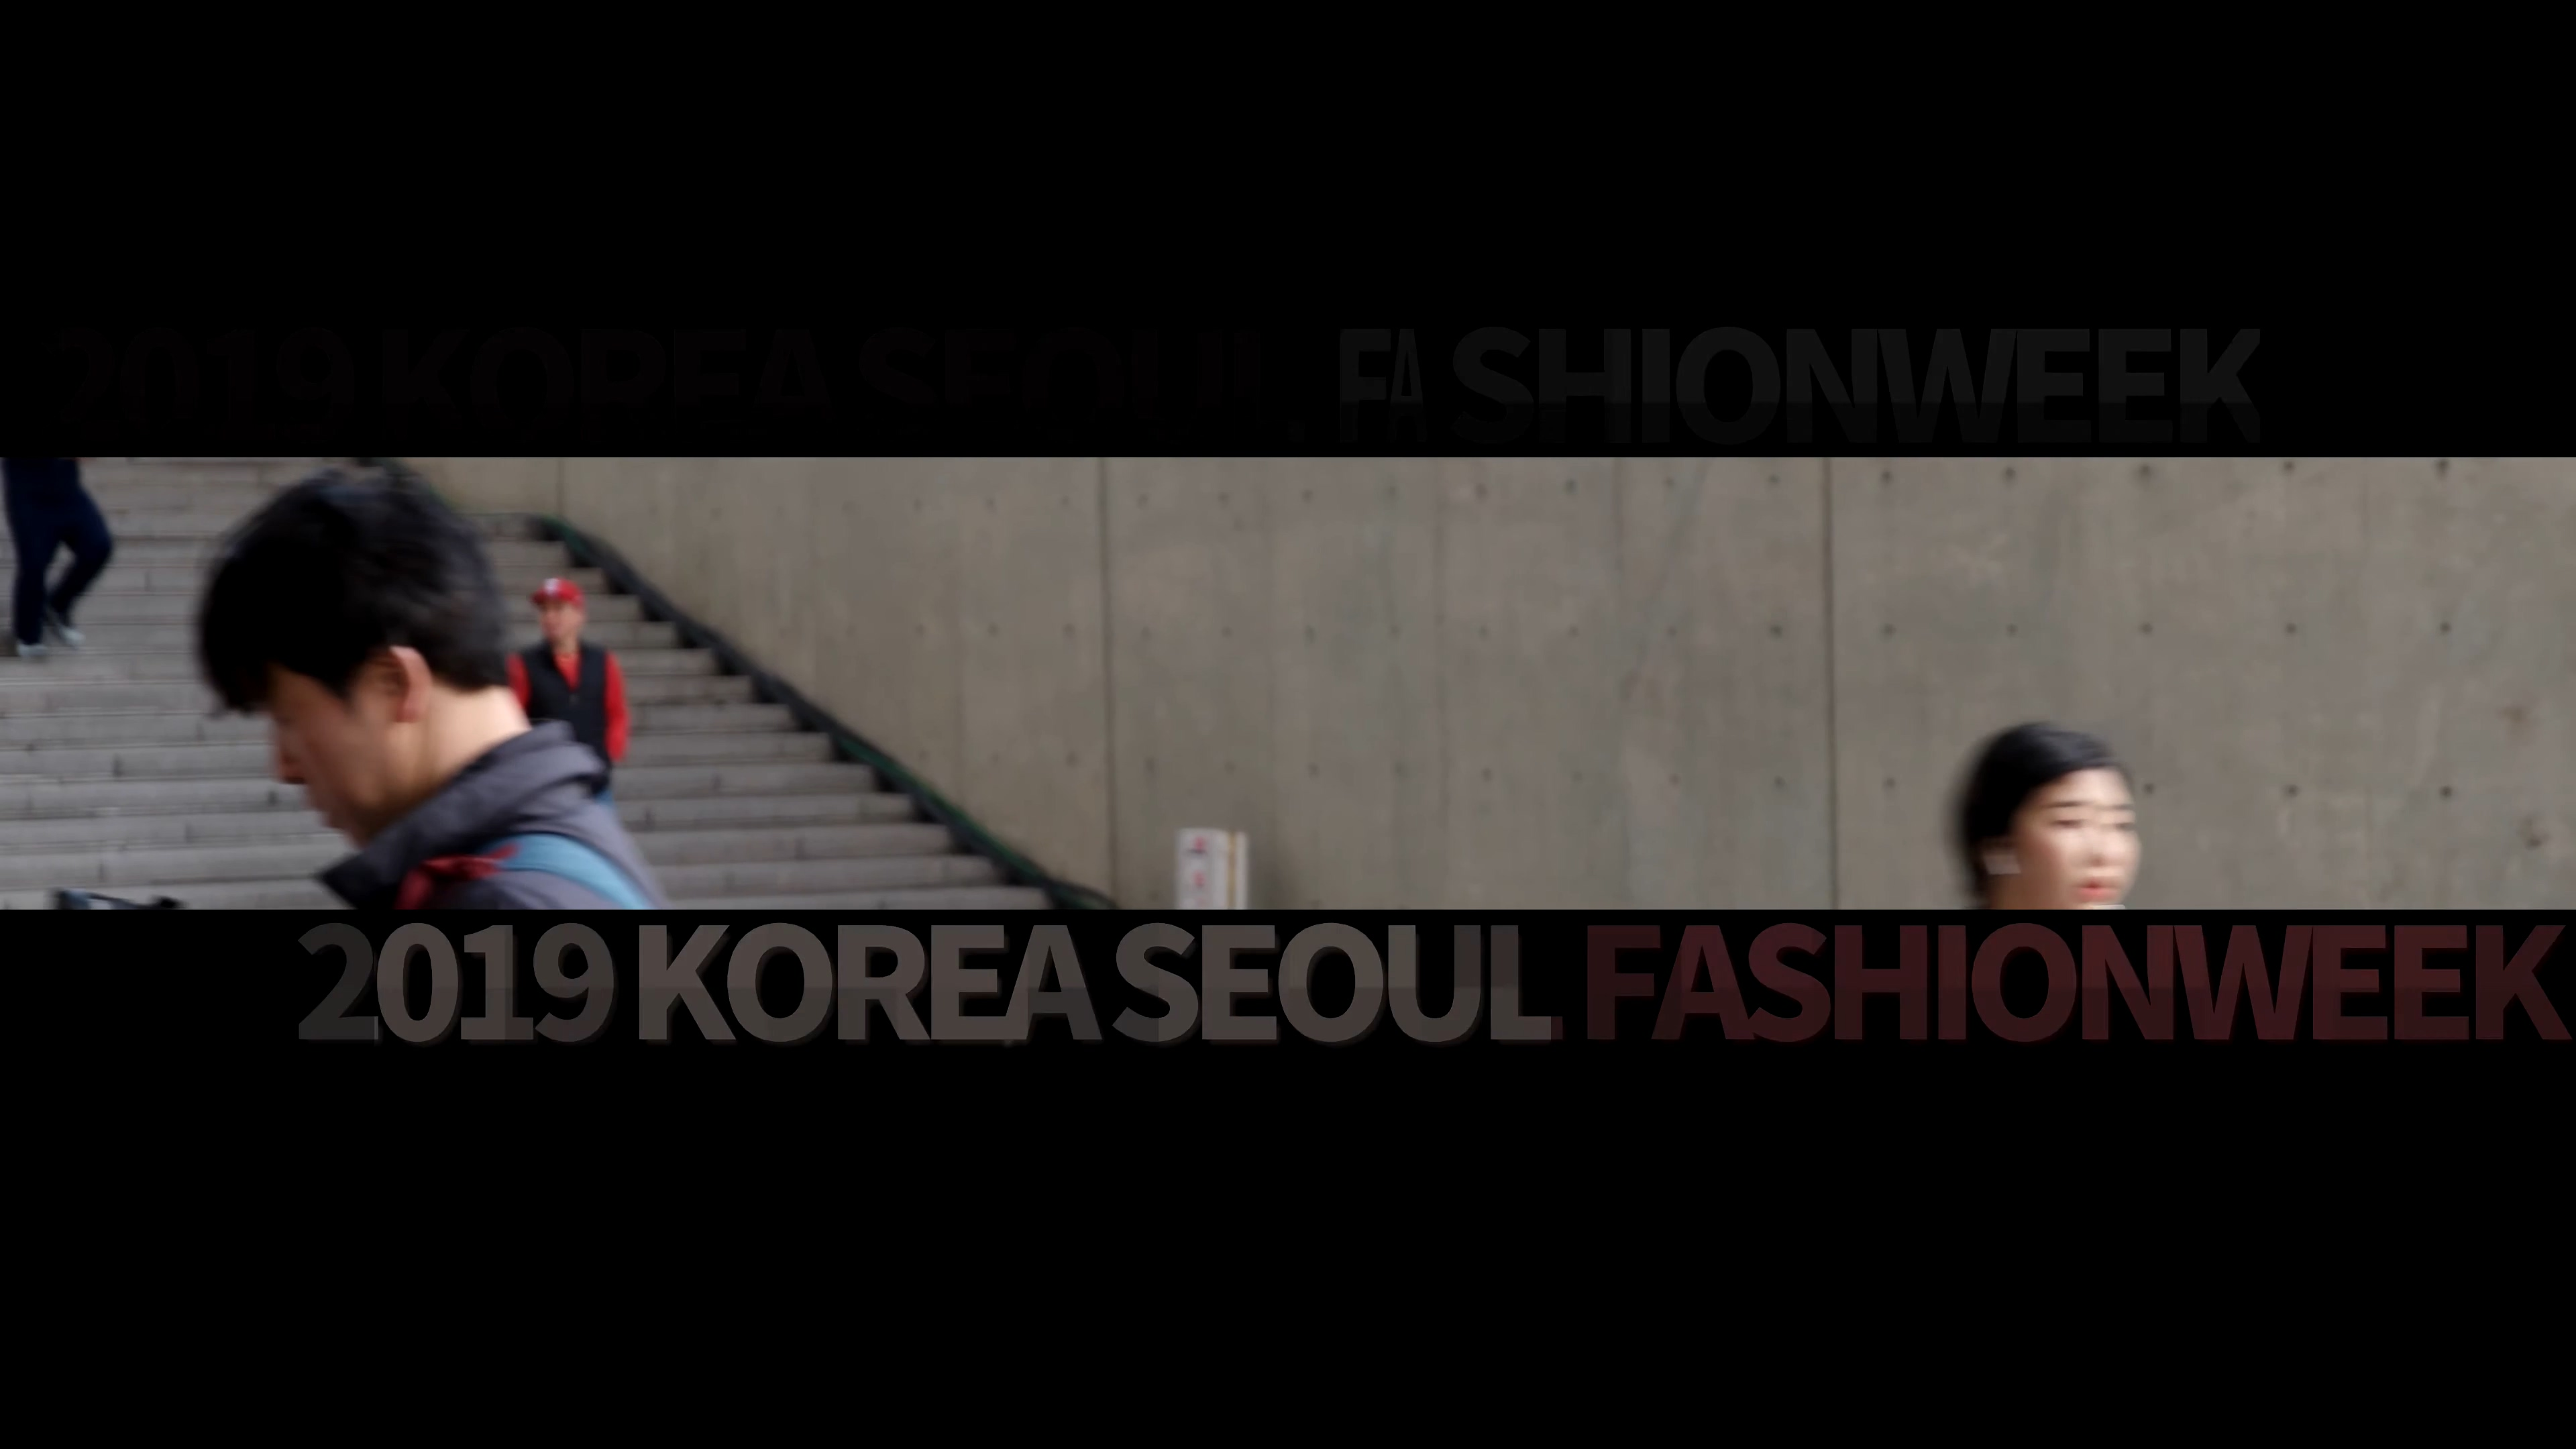 2019 Seoul Fashion Week Video